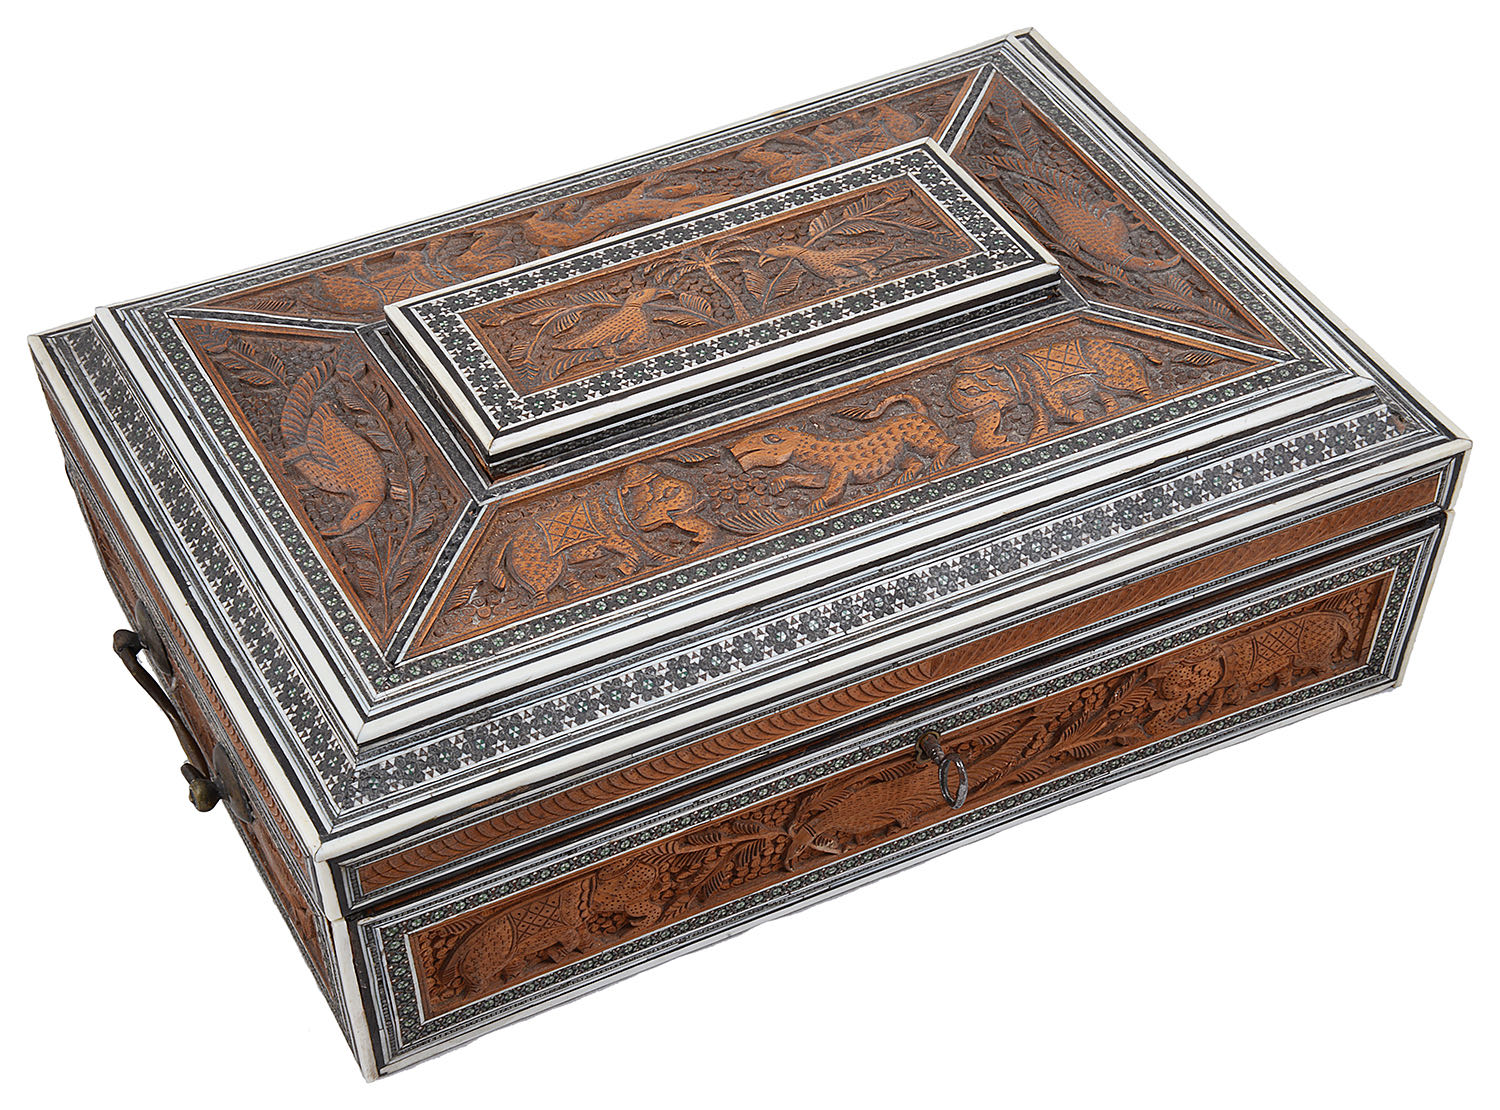 Lot 12 - A 19th century Anglo-Indian sandalwood, ivory and sadeli work box